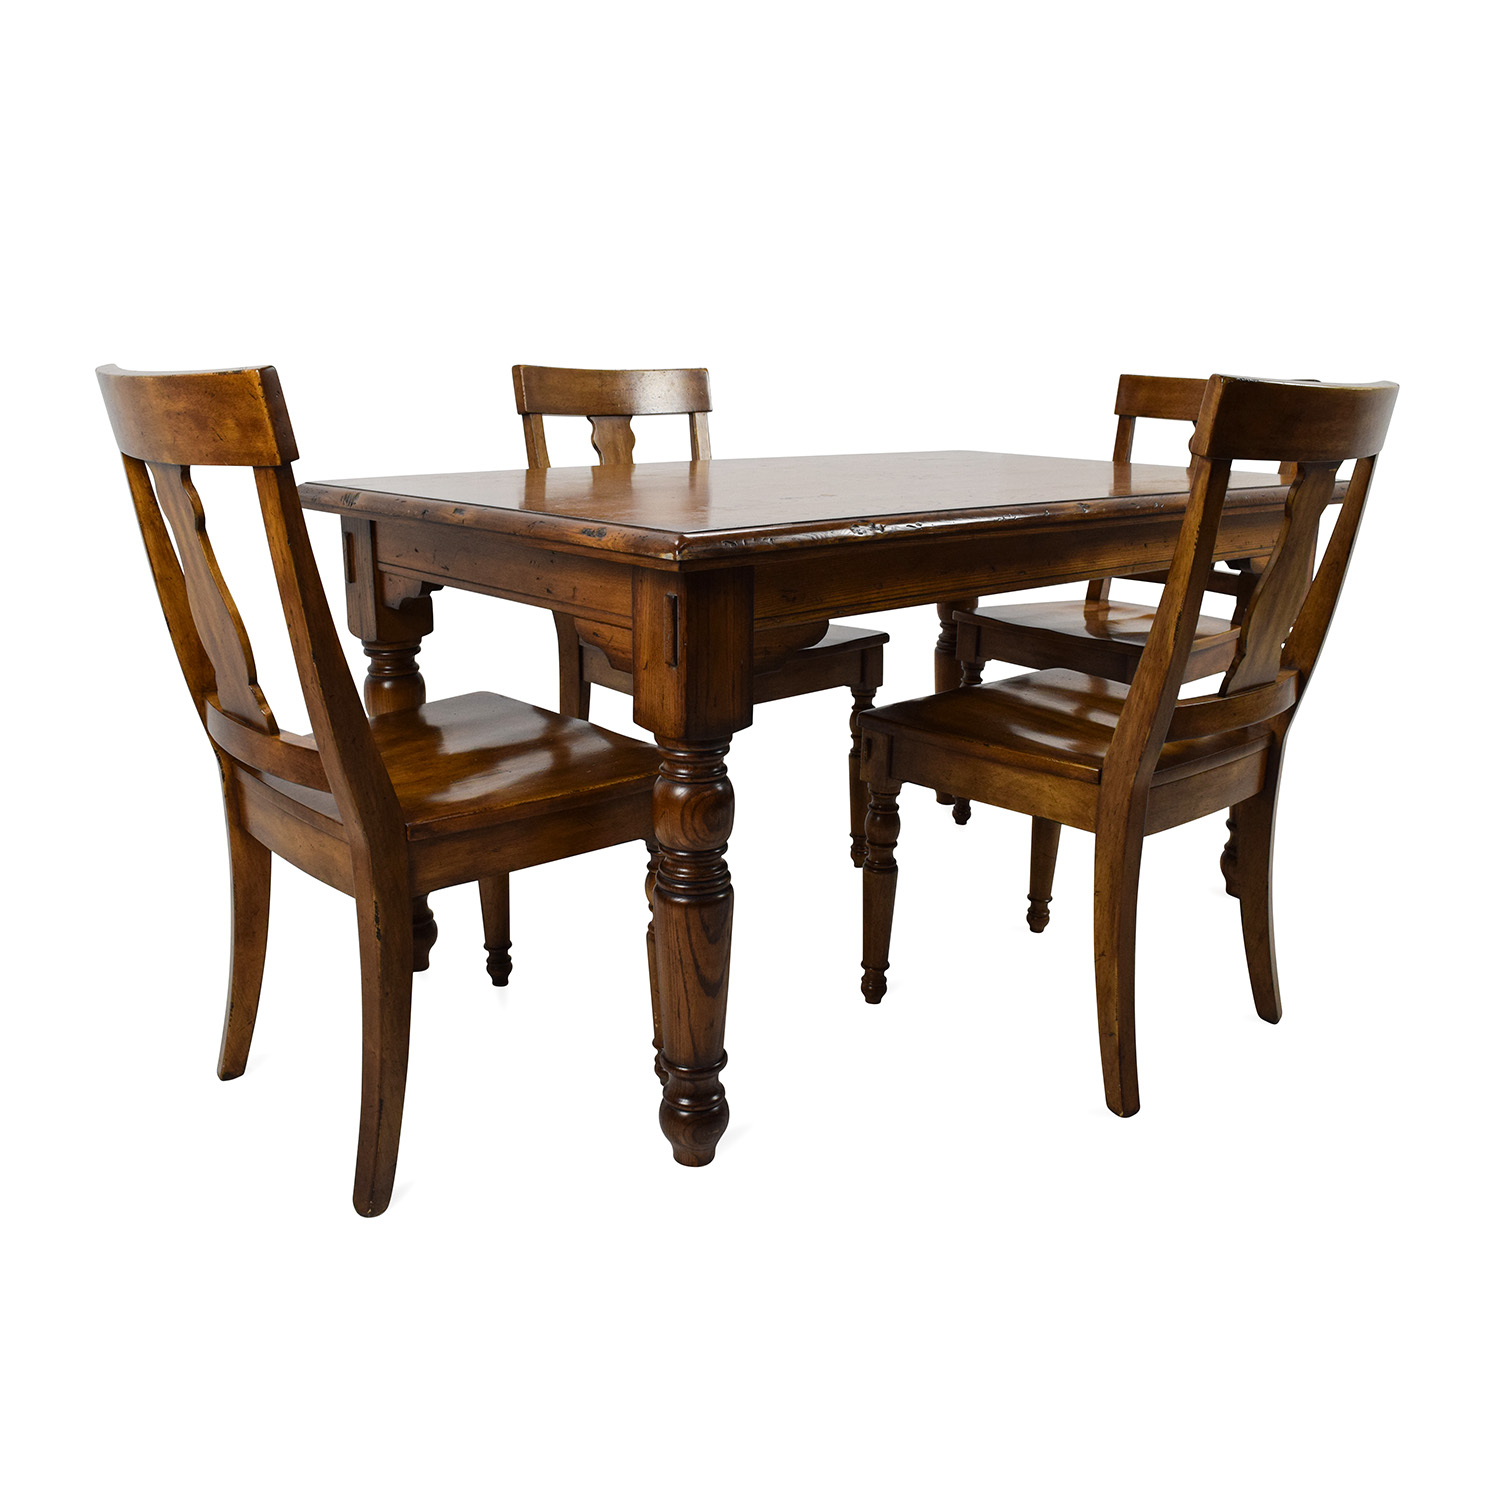 OFF Pottery Barn Pottery Barn Solid Wood Dining Set Tables - Pottery barn black dining table